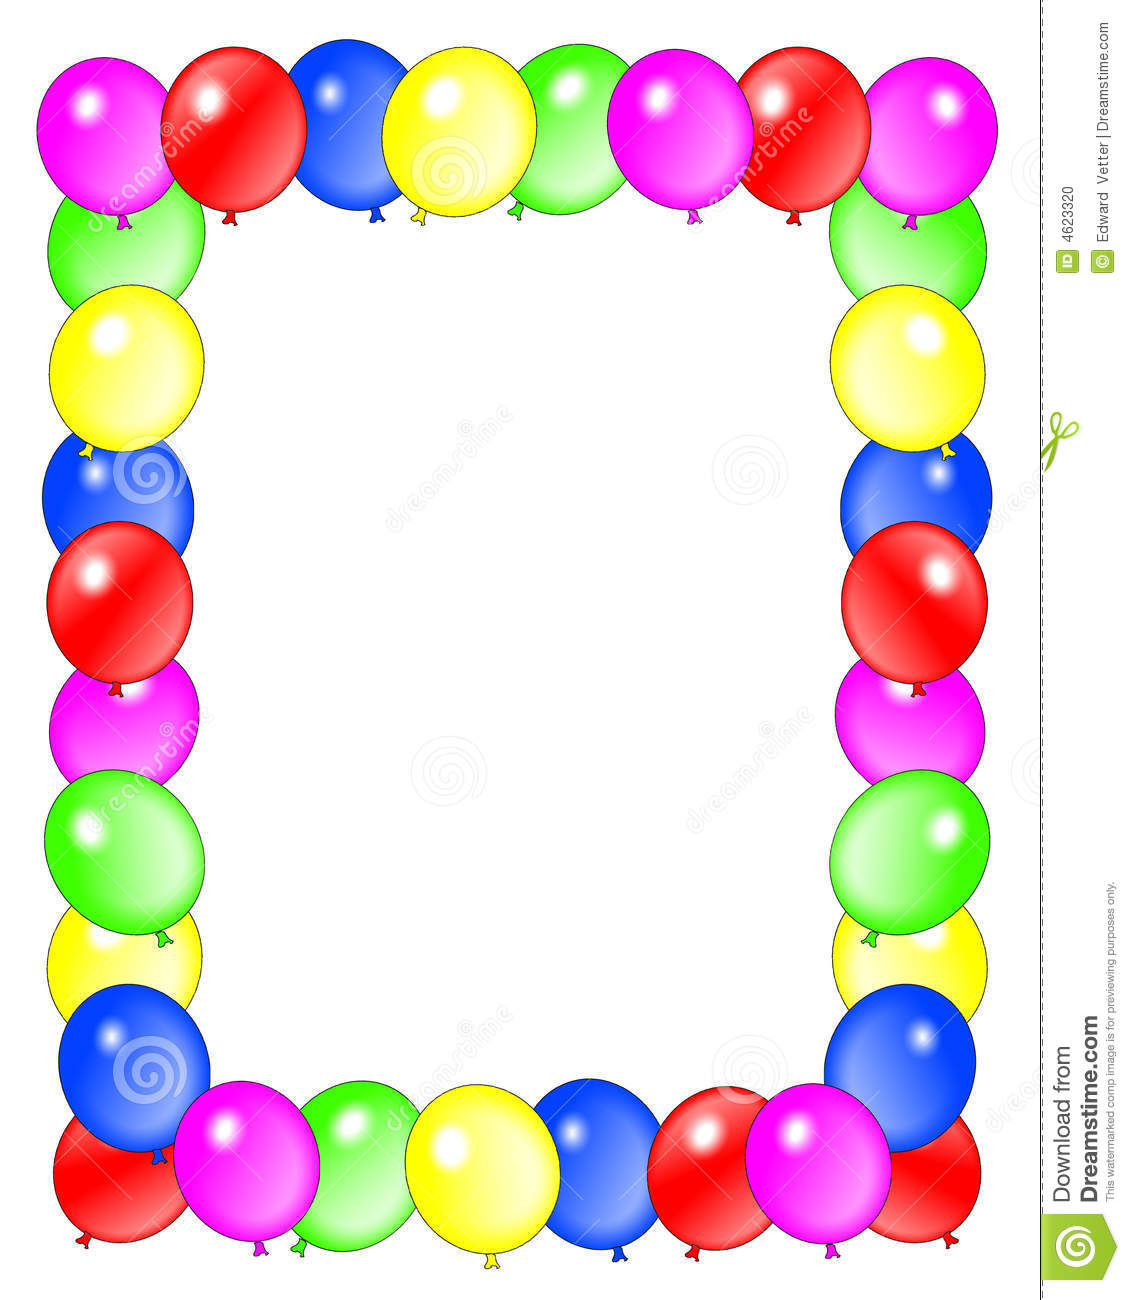 picture relating to Birthday Clipart Free Printable identified as totally free printable birthday borders and frames